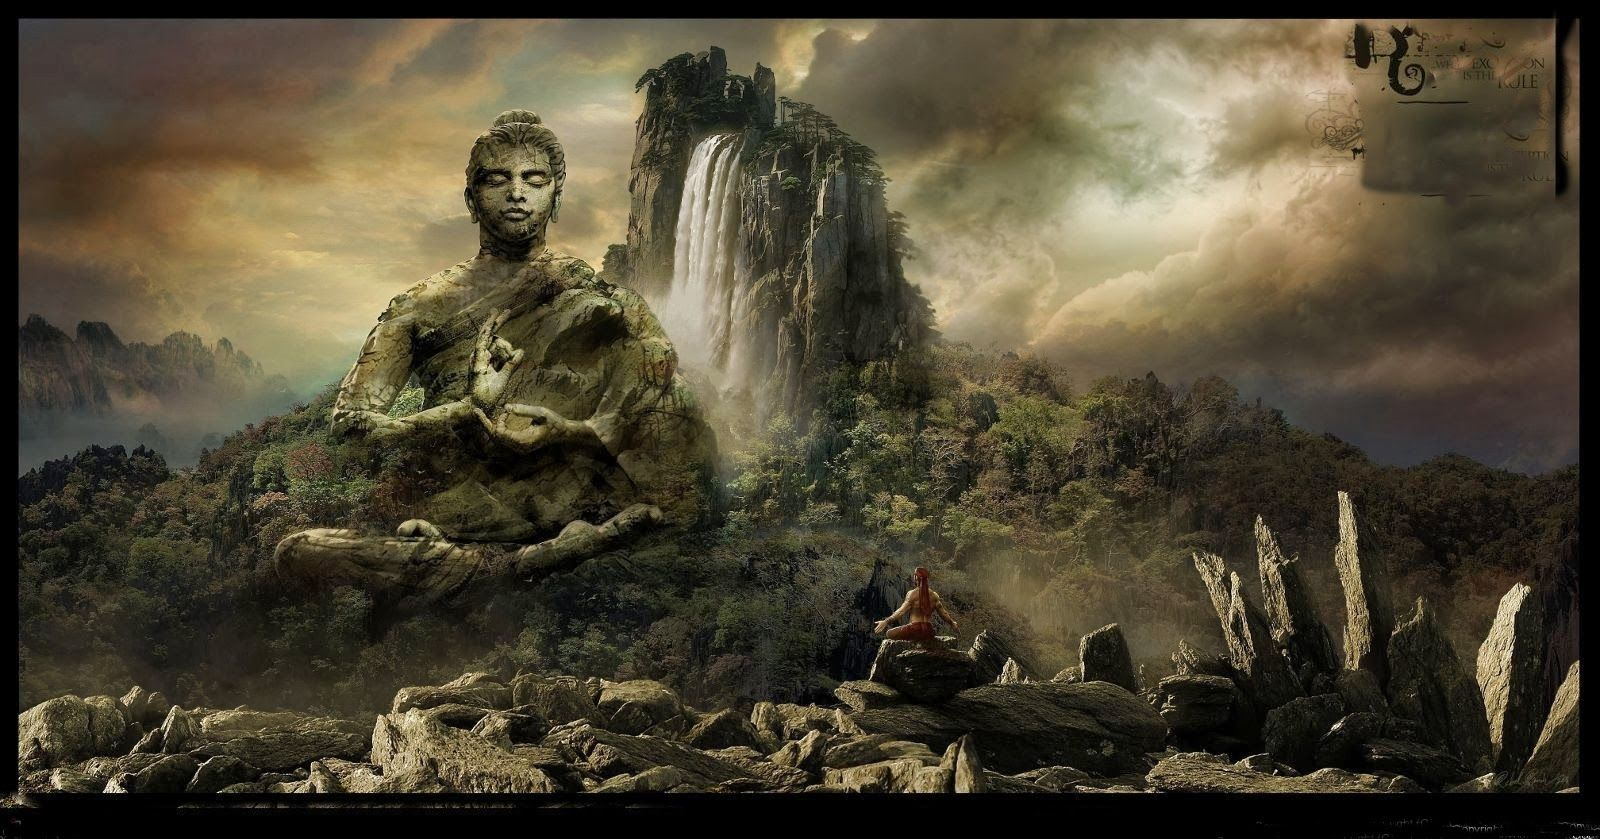 Lord buddha images for mobile 3